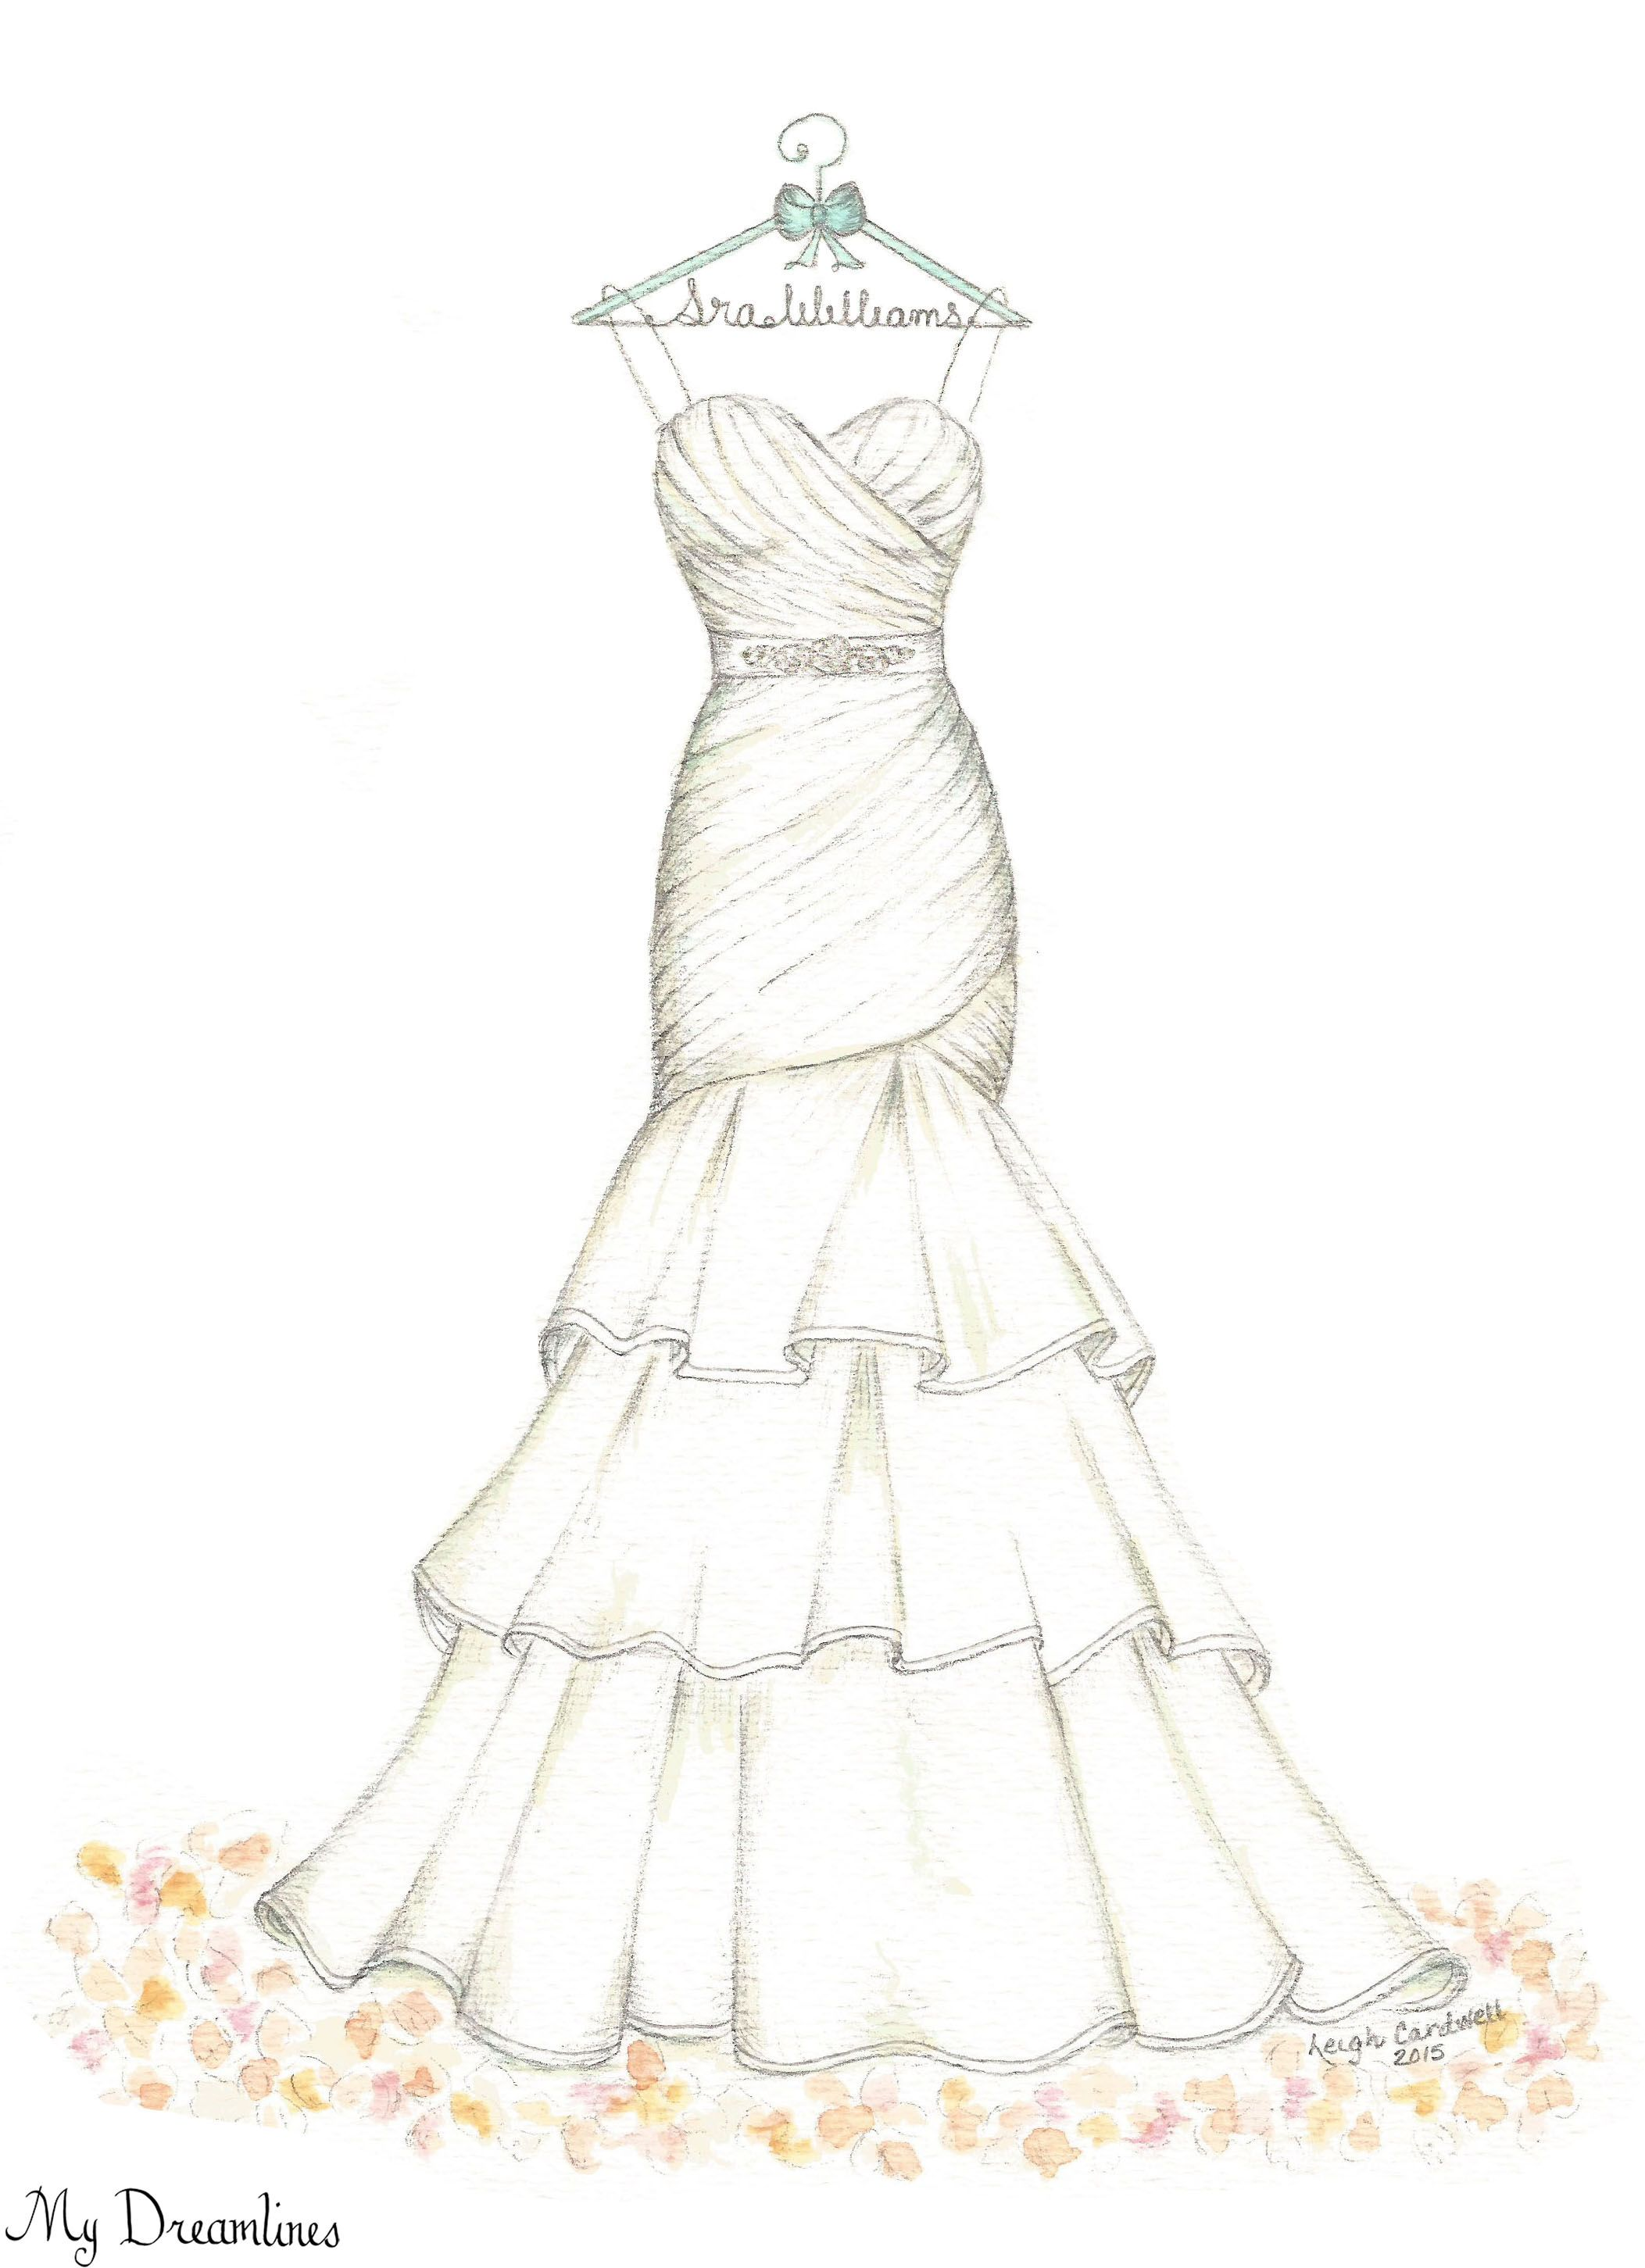 dreamlines wedding dress sketch oneyearanniversarygift